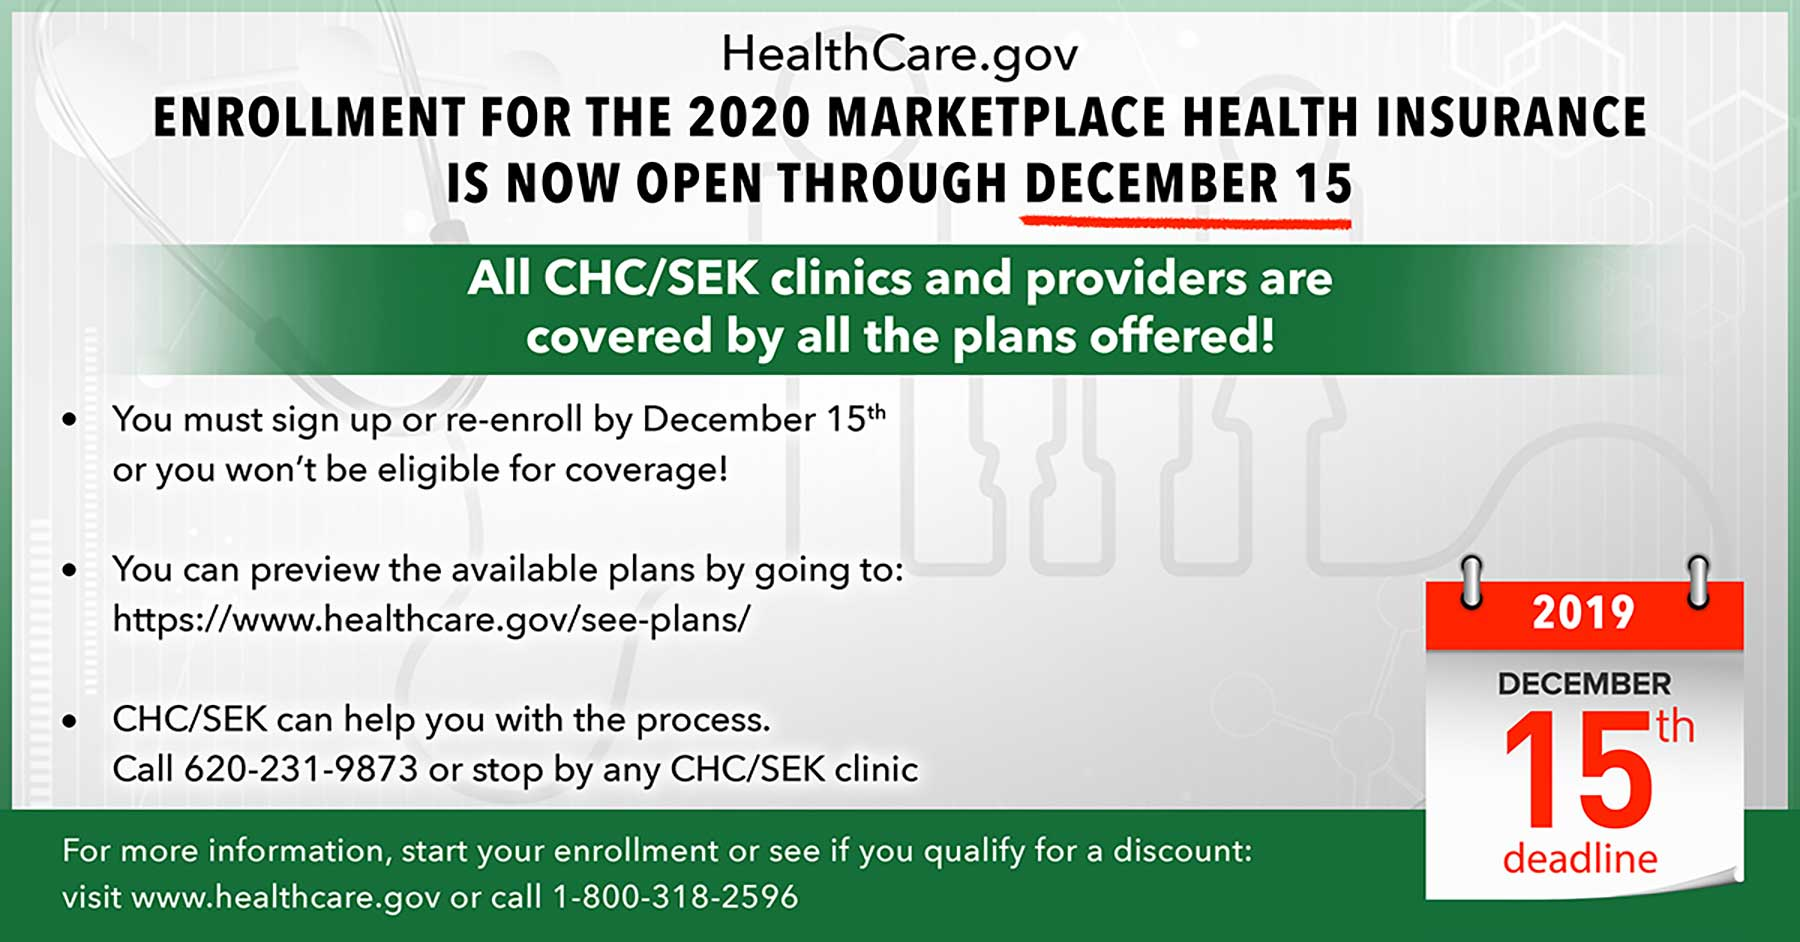 Enrollment for the 2020 marketplace health insurance is now open through December 15. All CHC/SEK clinics and providers are covered by all the plans offered! For more information visit www.healthcare.gov or call 1-800-318-2596.